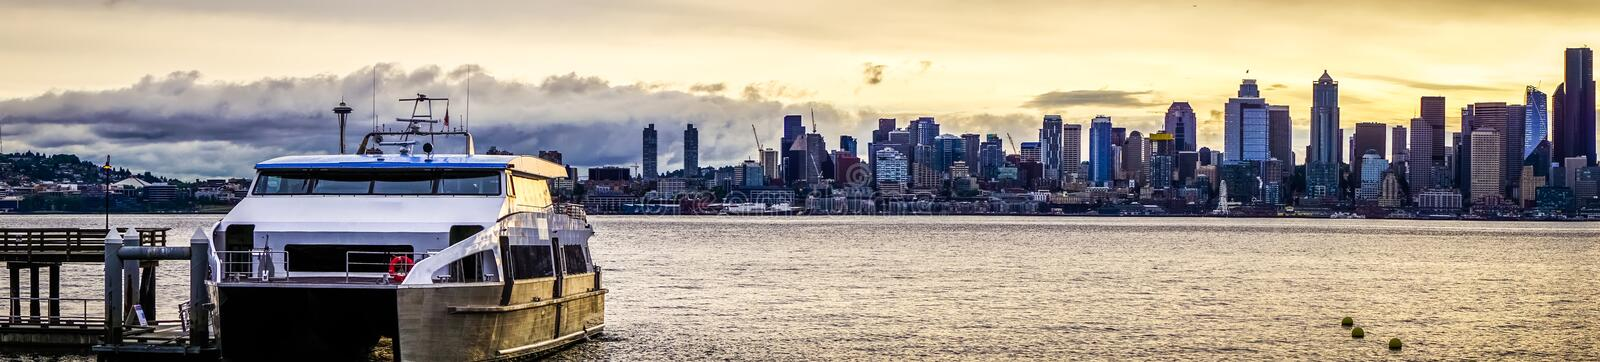 Seattle city skyline early morning with watercraft in foreground royalty free stock photography